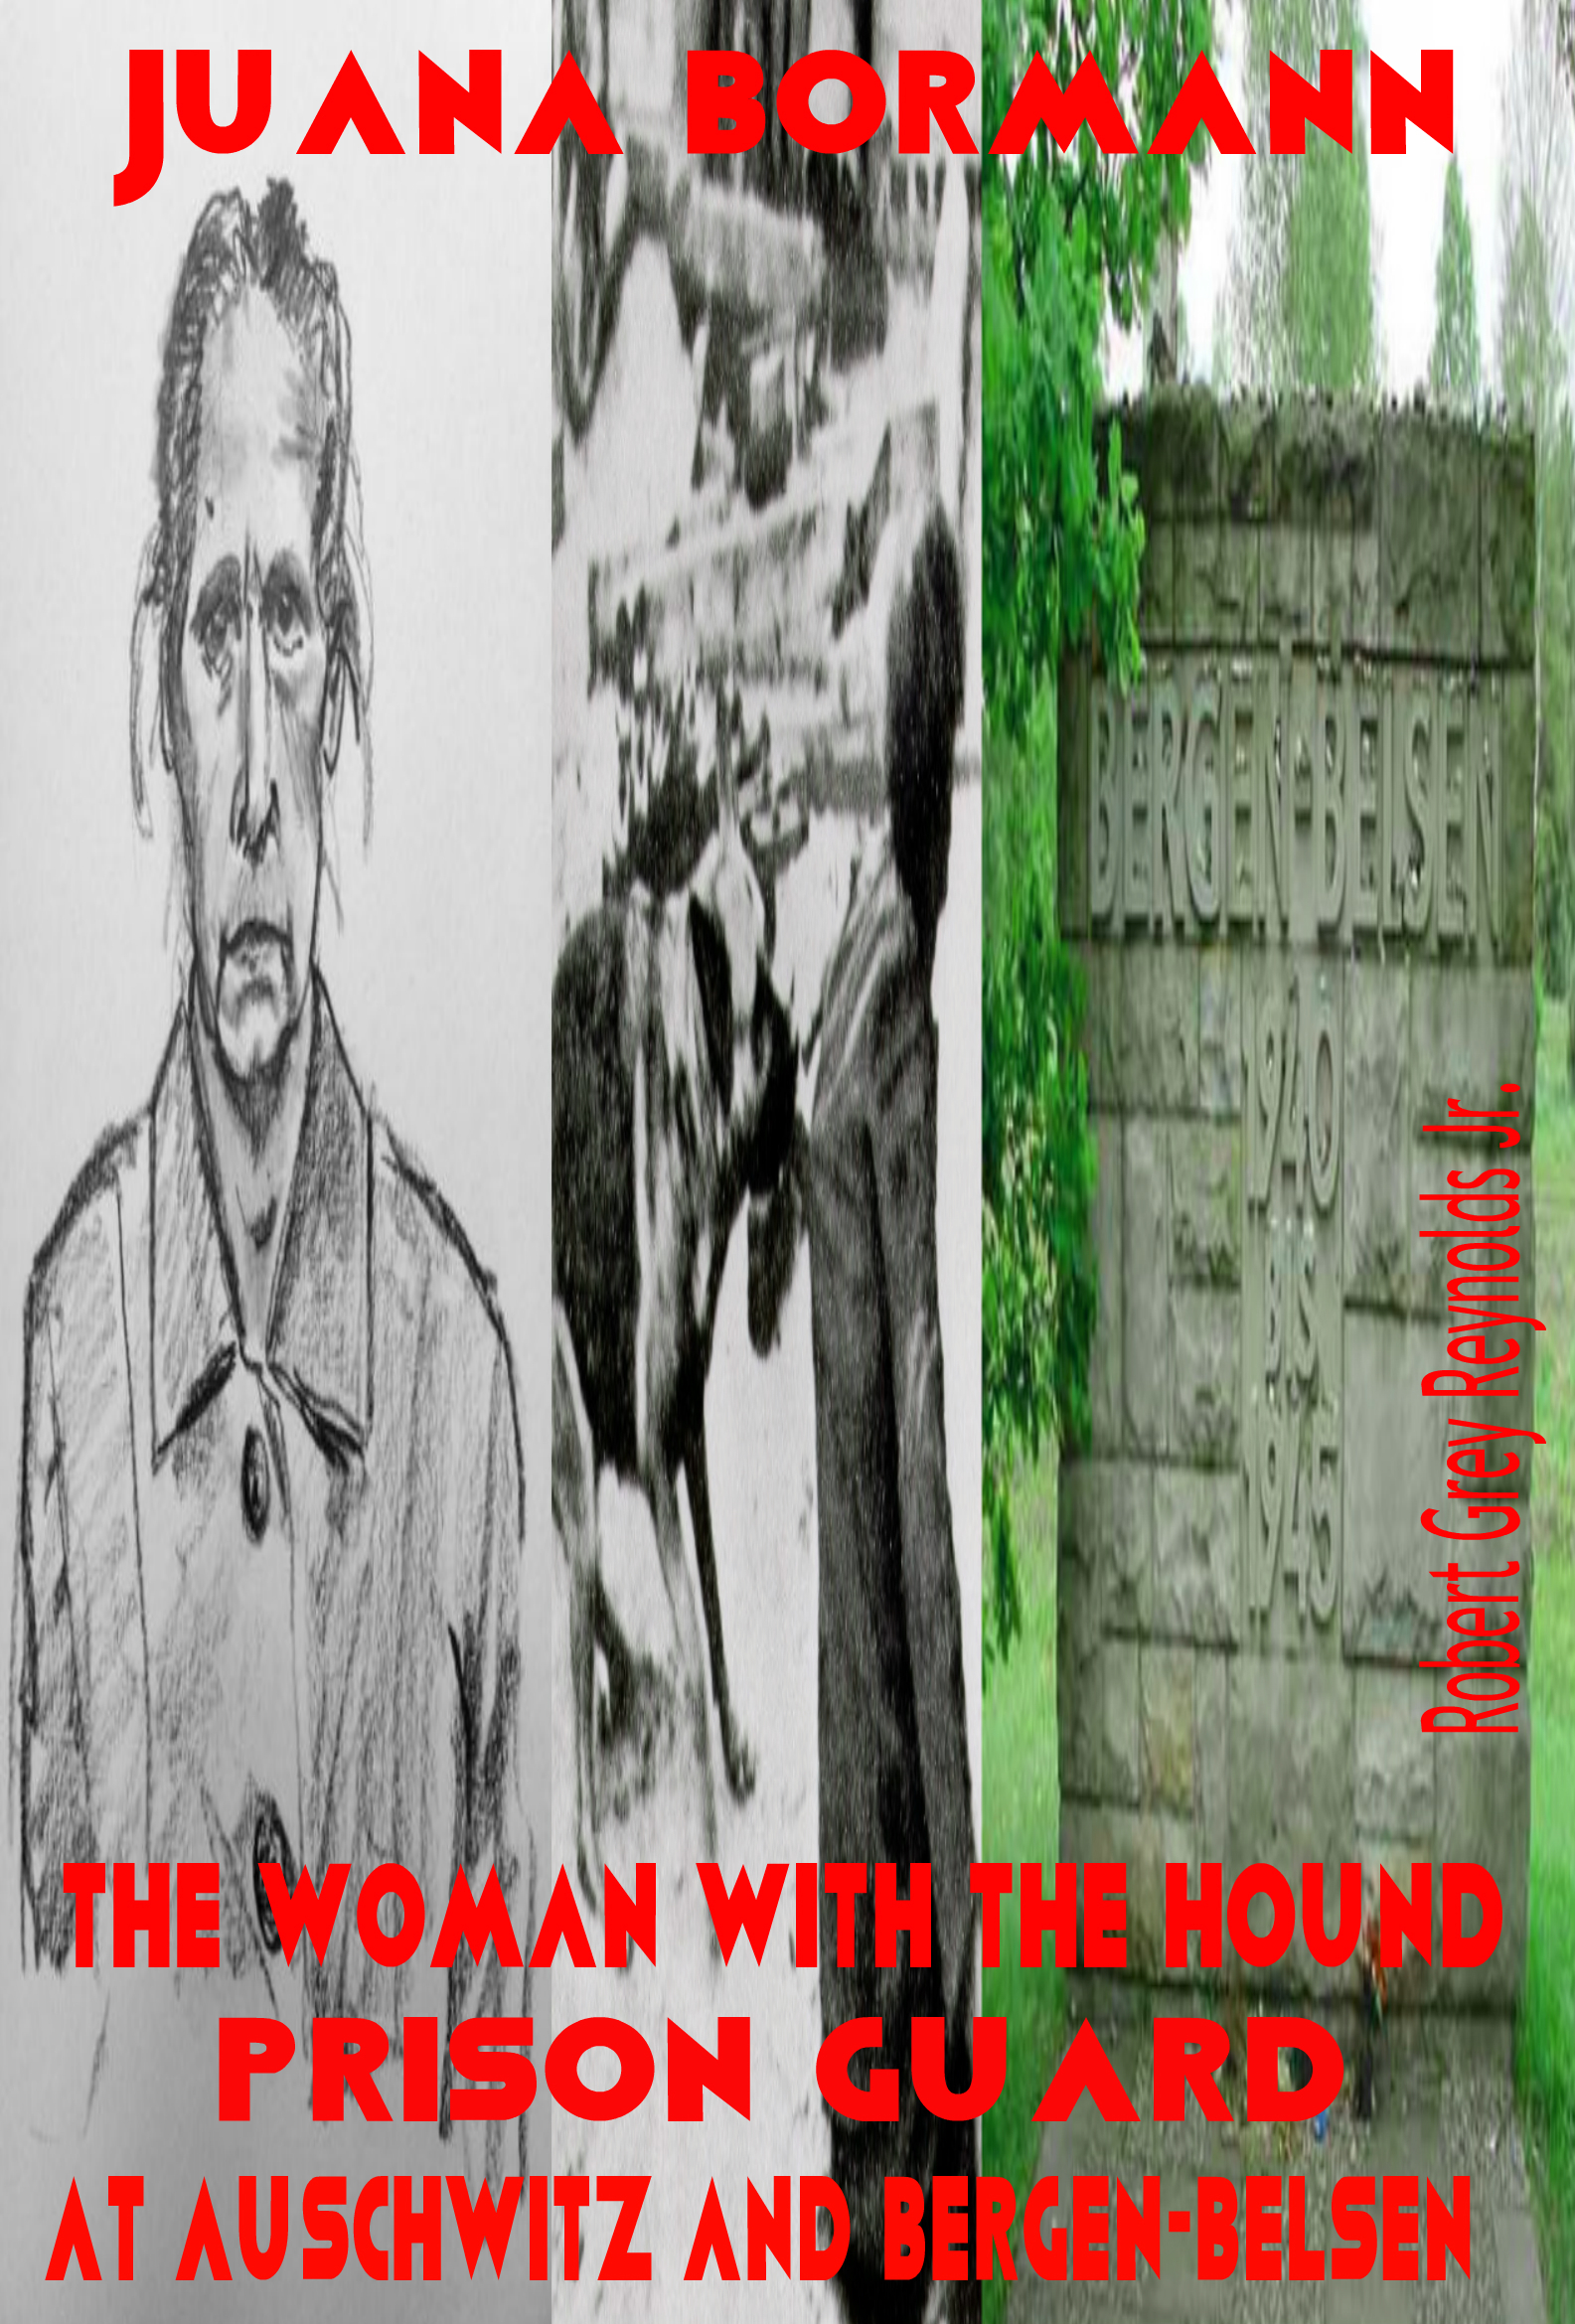 Juana Bormann The Woman With The Hound Prison Guard At Auschwitz And Bergen-Belsen  by  Robert Grey Reynolds Jr.